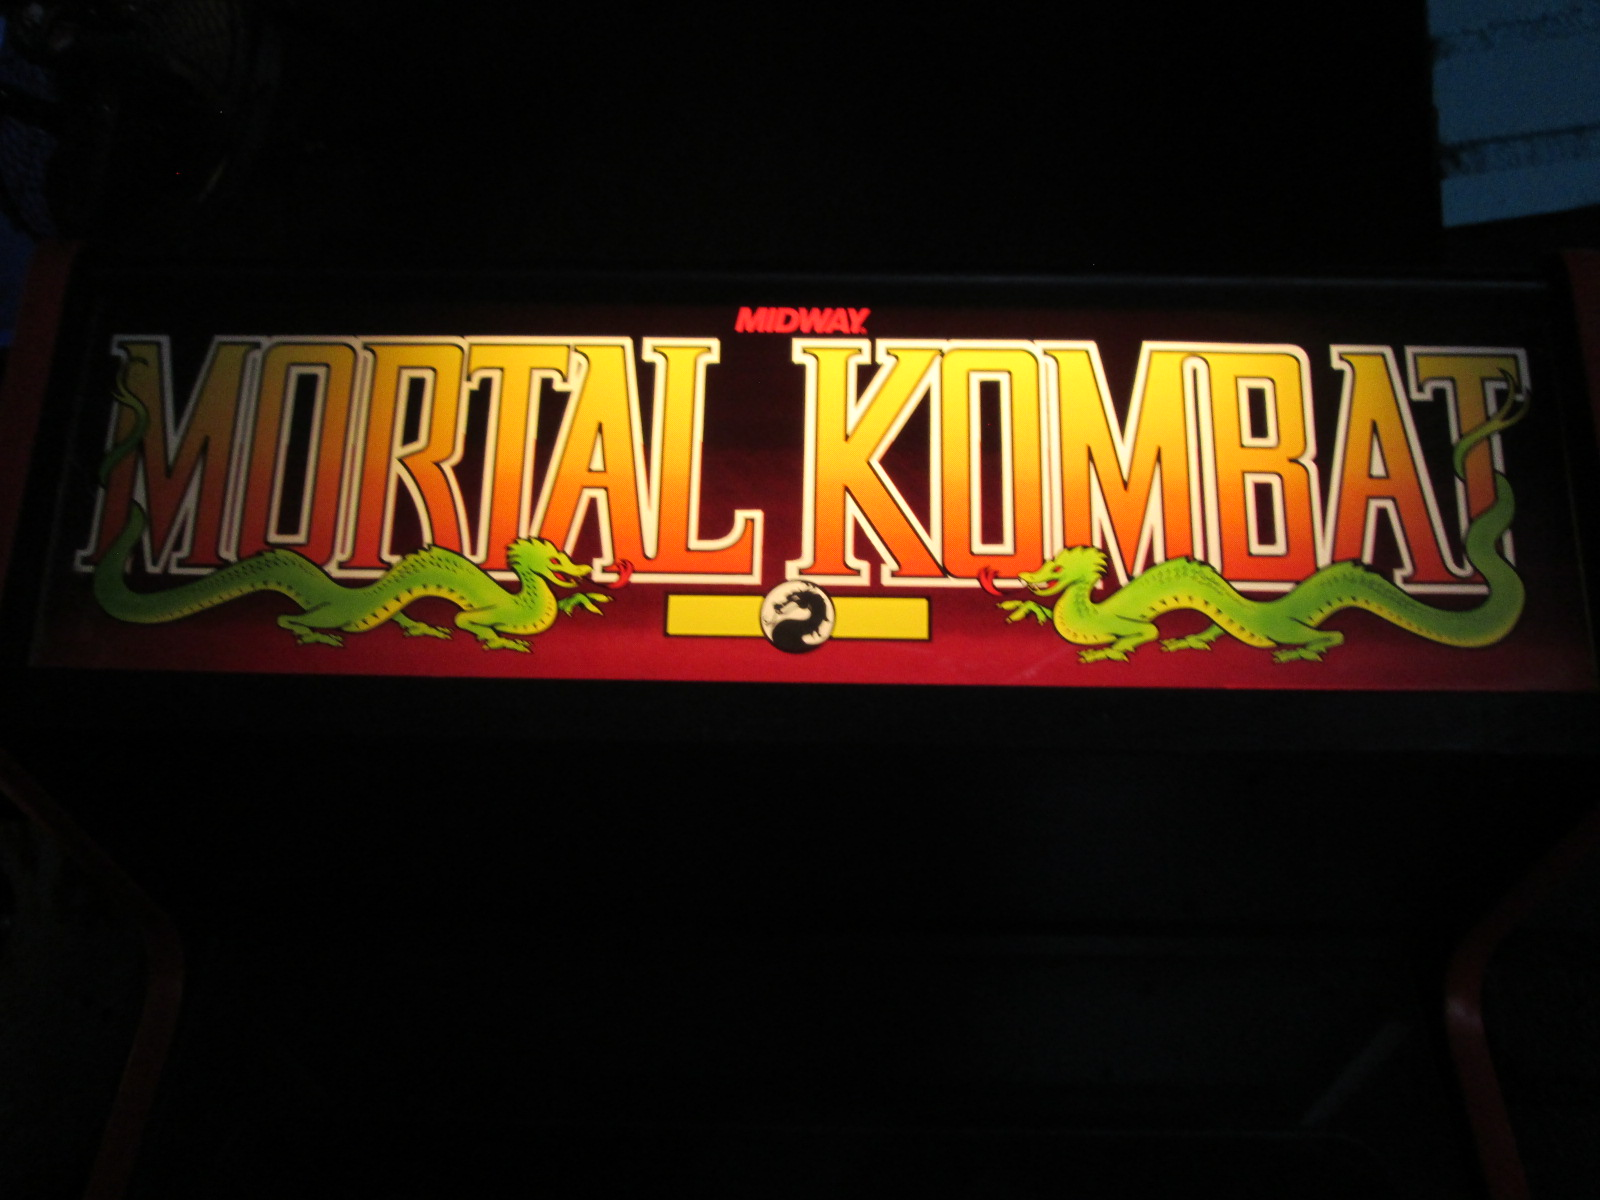 ed1475: Mortal Kombat (Arcade) 296,000 points on 2016-09-11 16:11:40